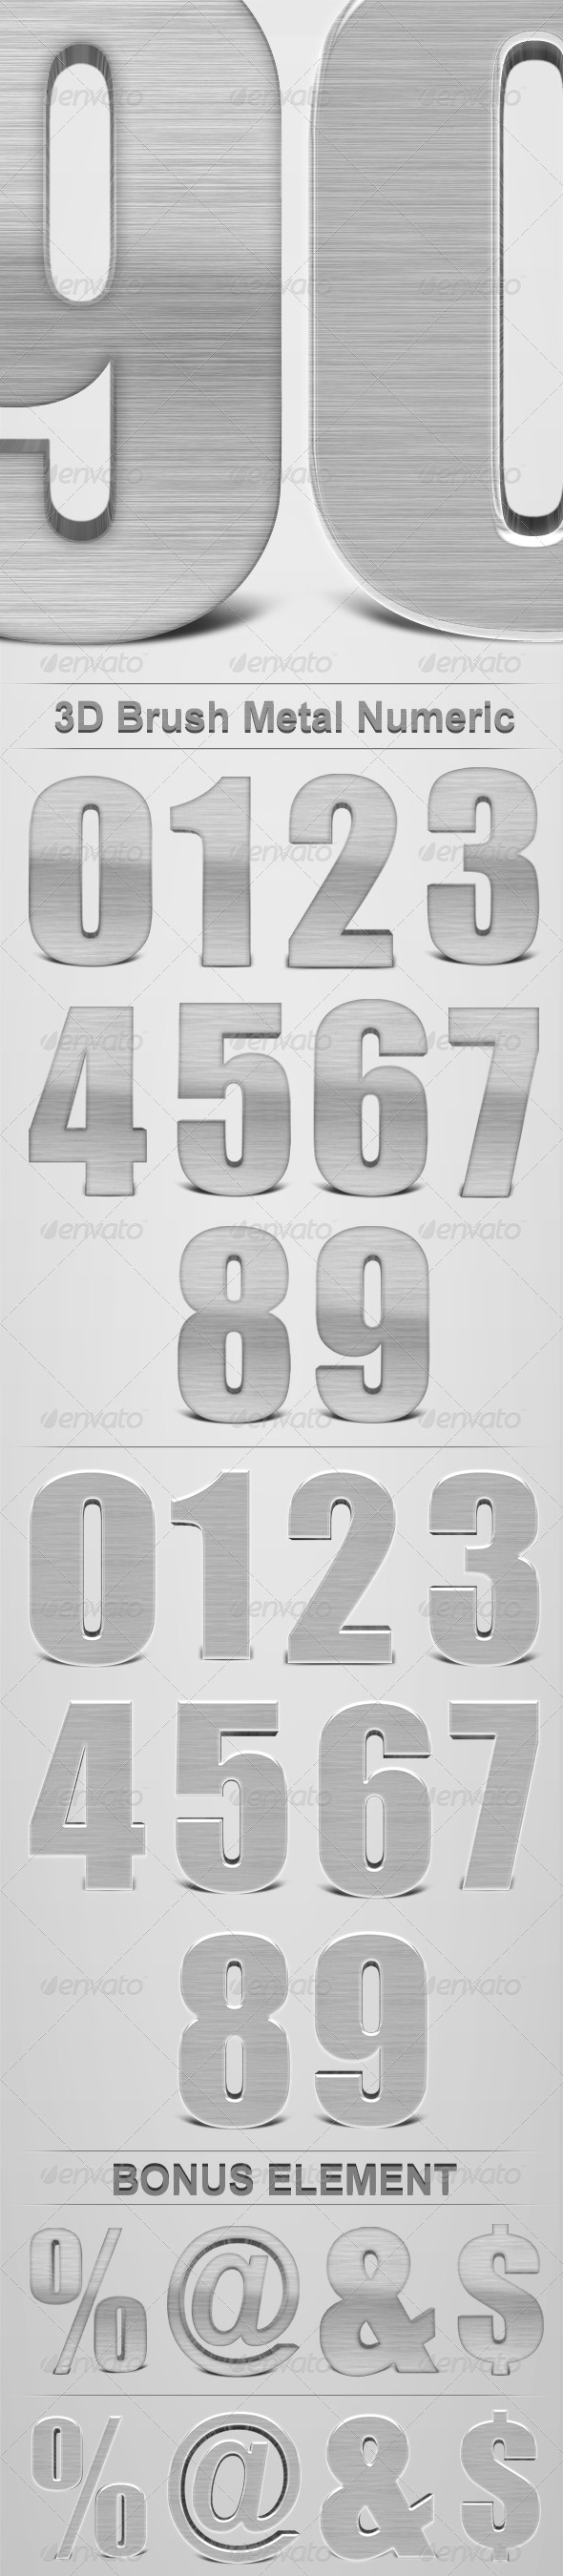 3D Brush Metal Numeric - Miscellaneous Graphics